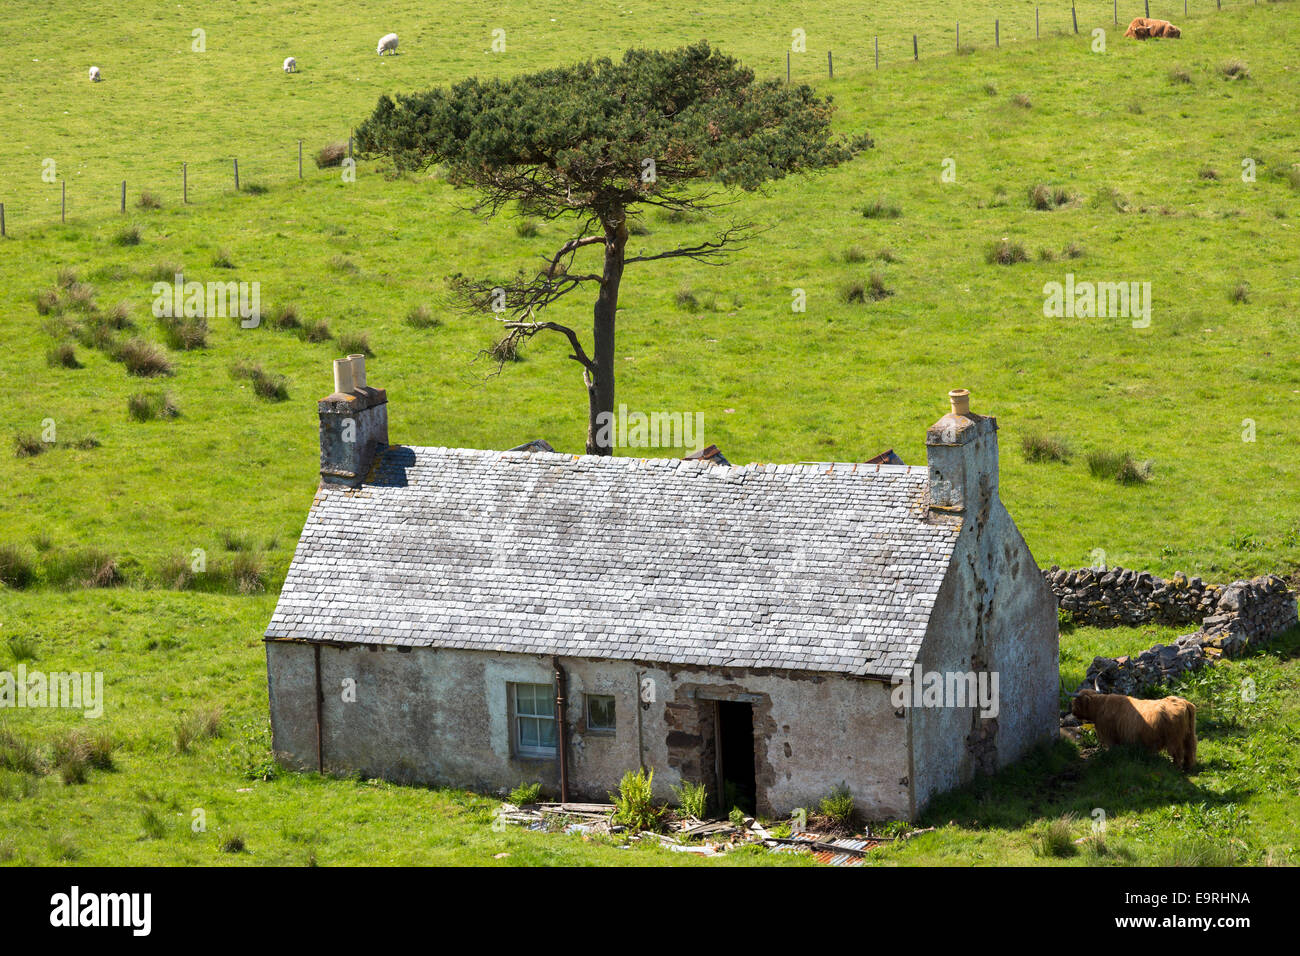 Derelict farm and at Kalnakill near Applecross, Wester Ross in the Scottish Highlands - Stock Image